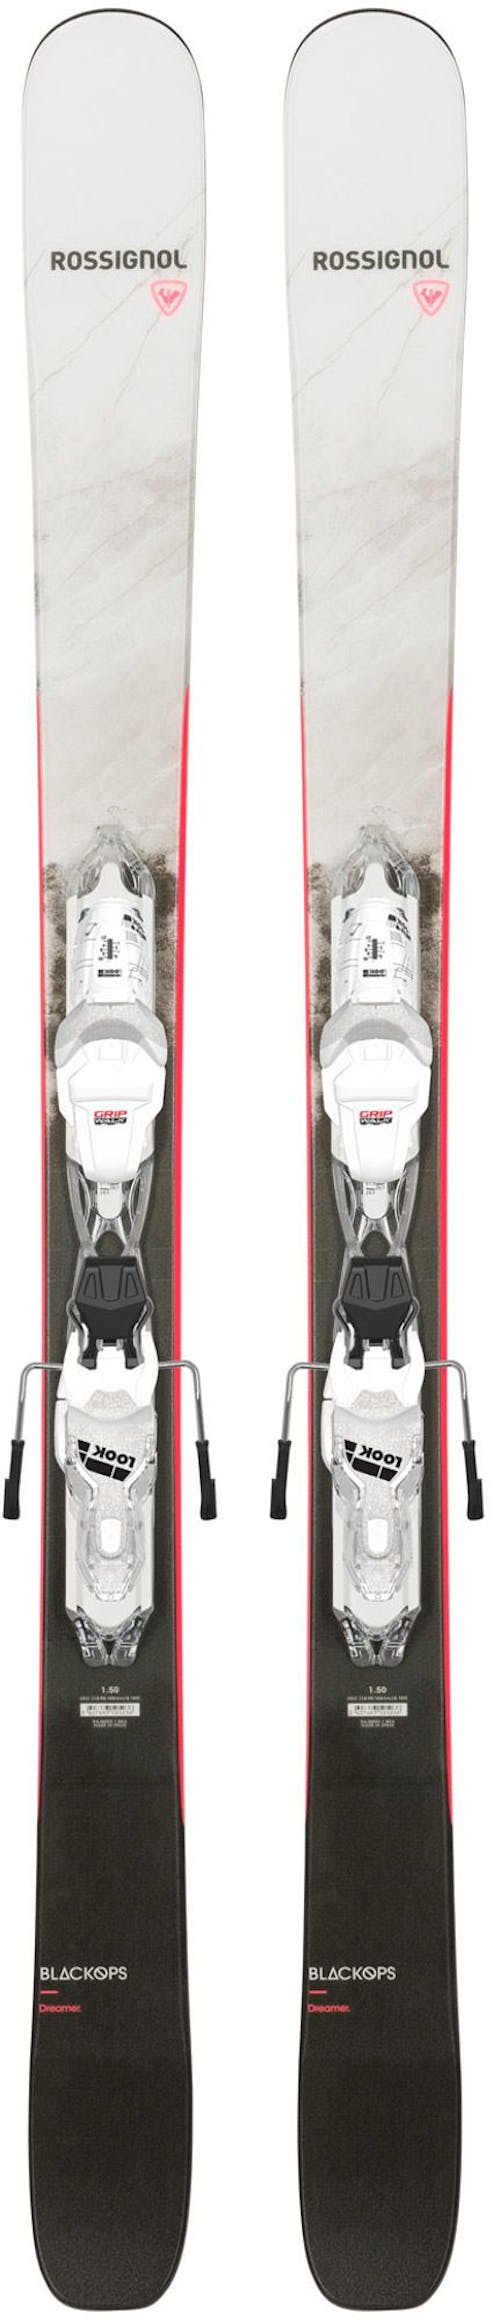 Rossignol Black Ops Dreamer Skis with Xpress Women's 10 Gw Bindings